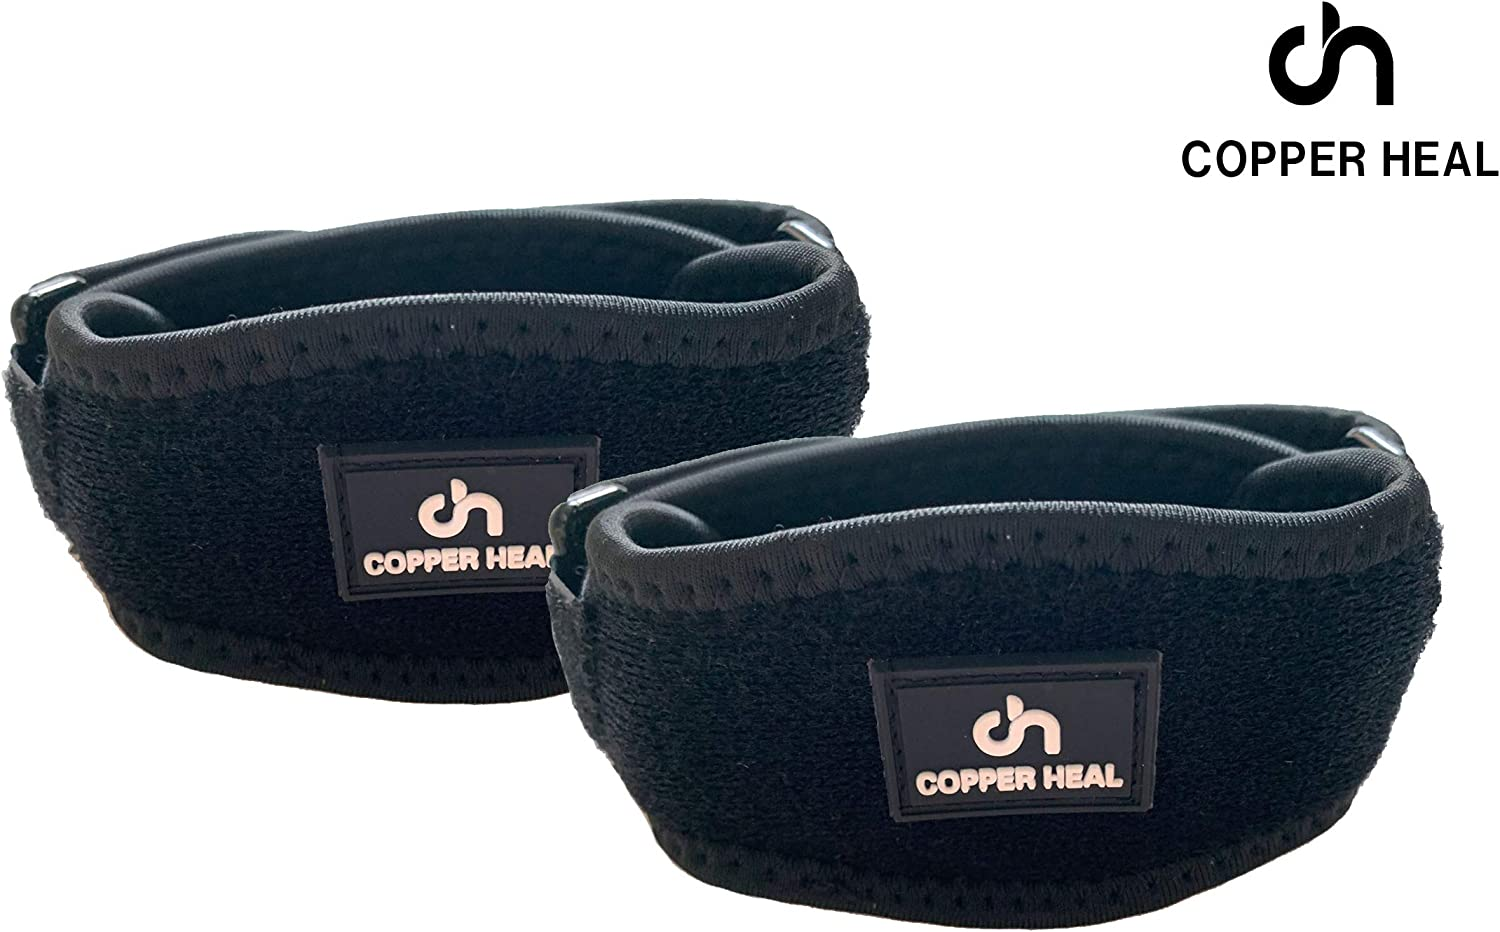 COPPER HEAL Codera Deportiva Adjustable - Soporte Antebrazo ...